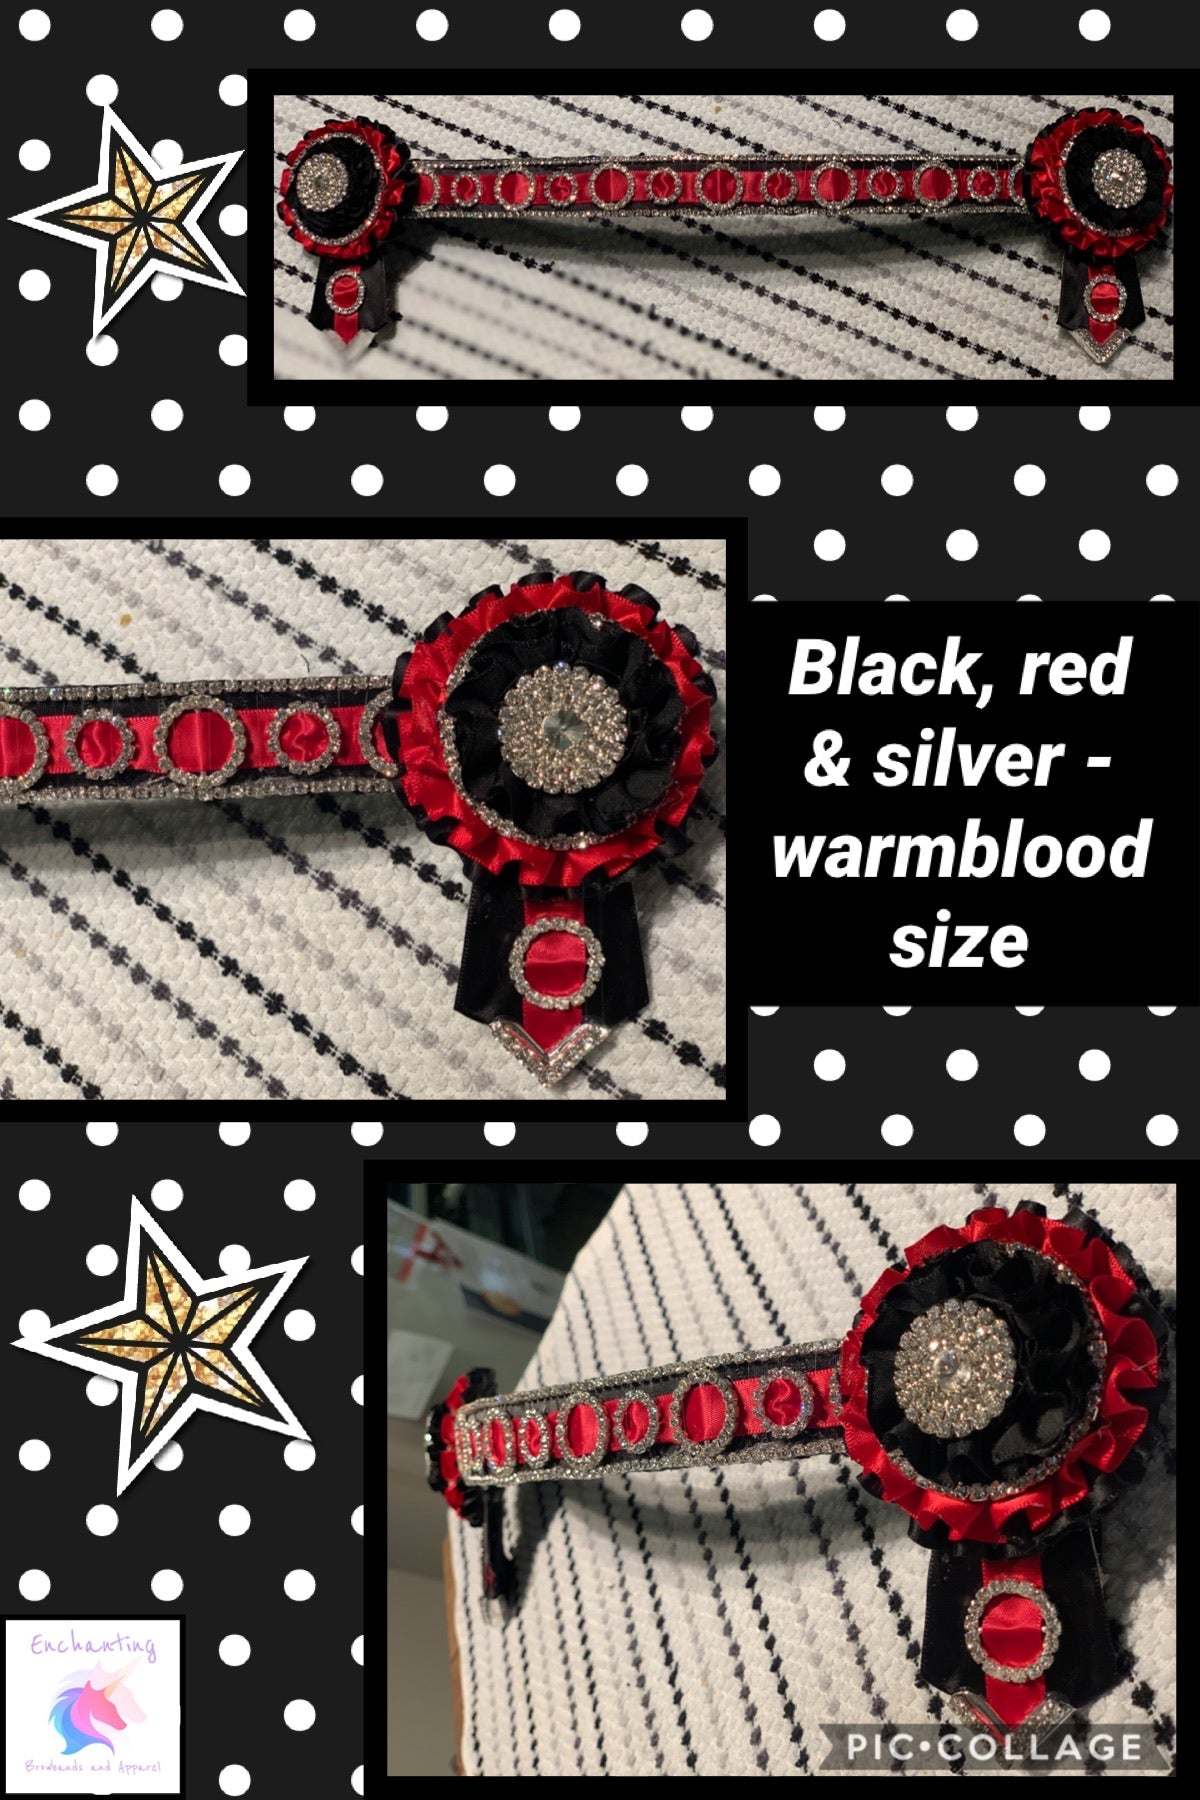 Black, red & silver browband